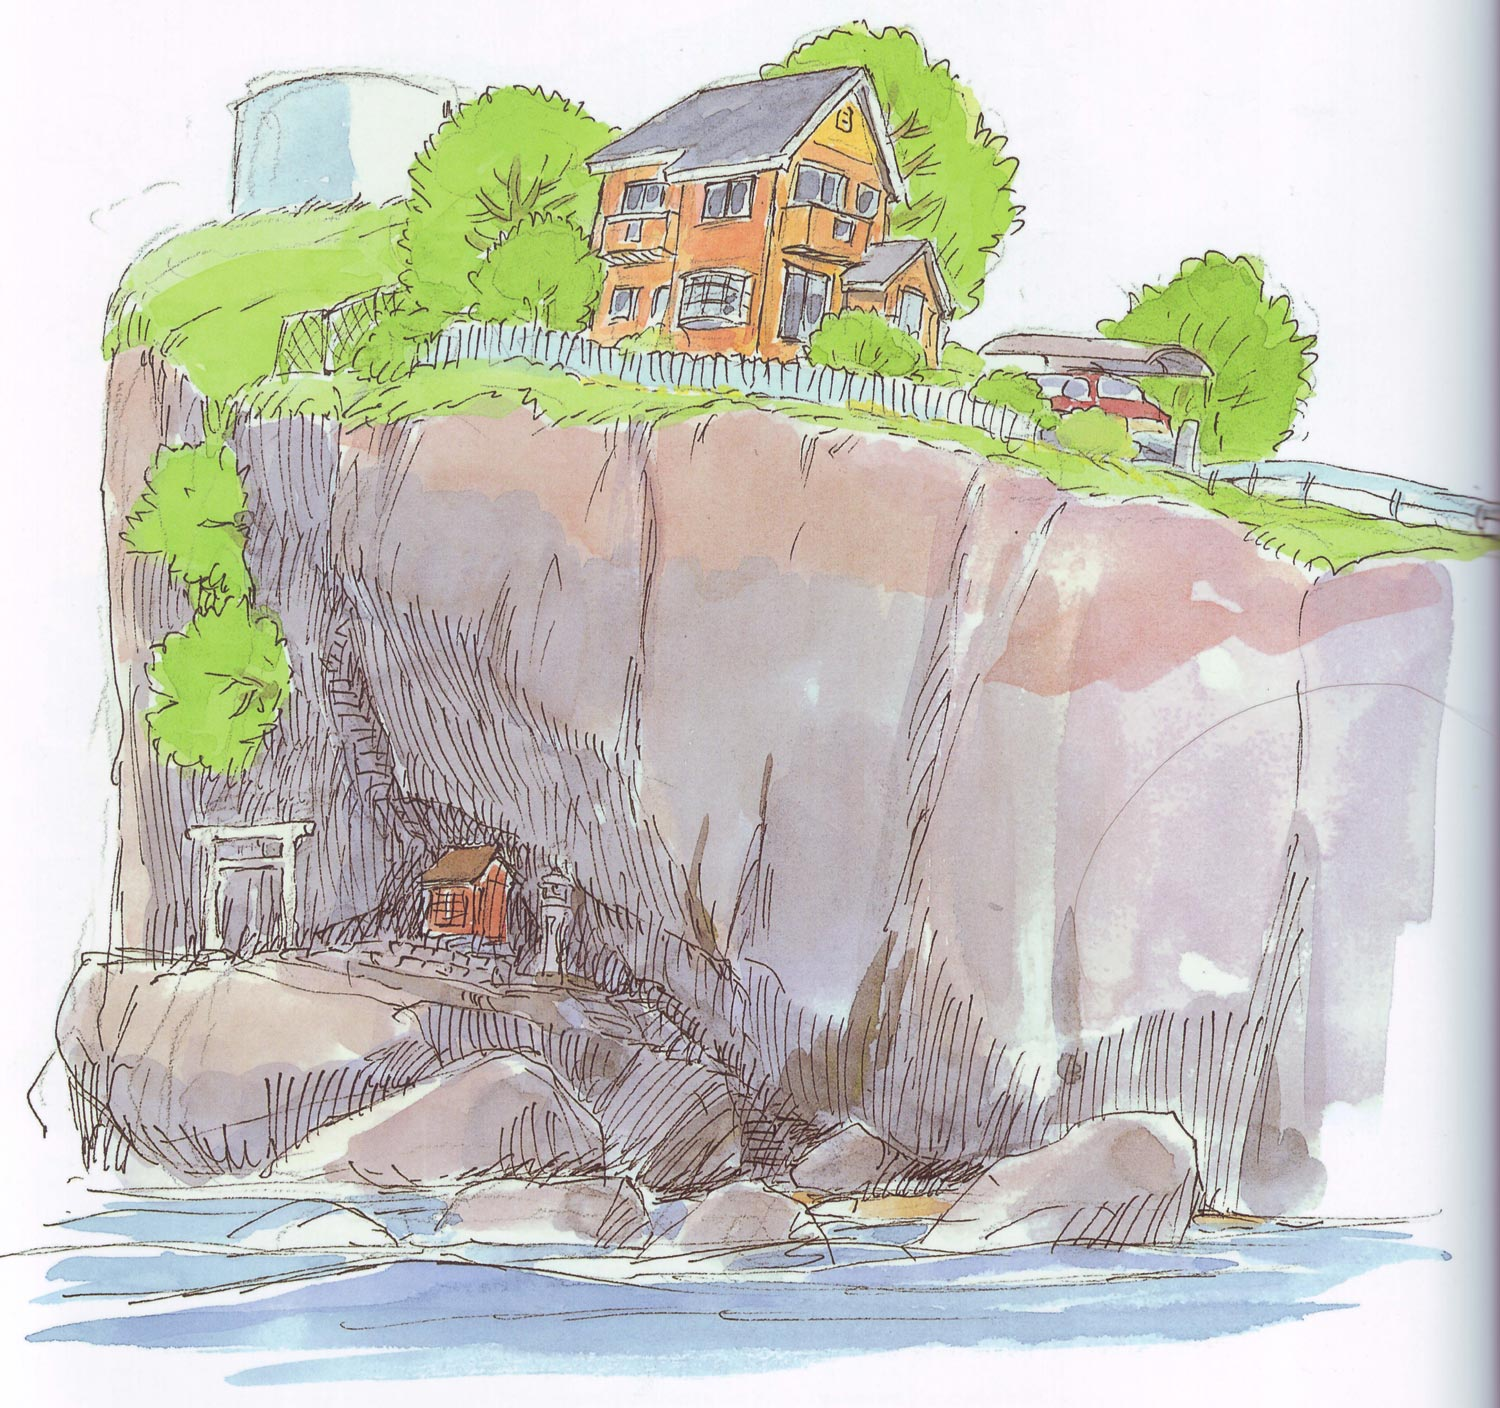 ponyo_on_the_cliff_by_the_sea_background_06.jpg